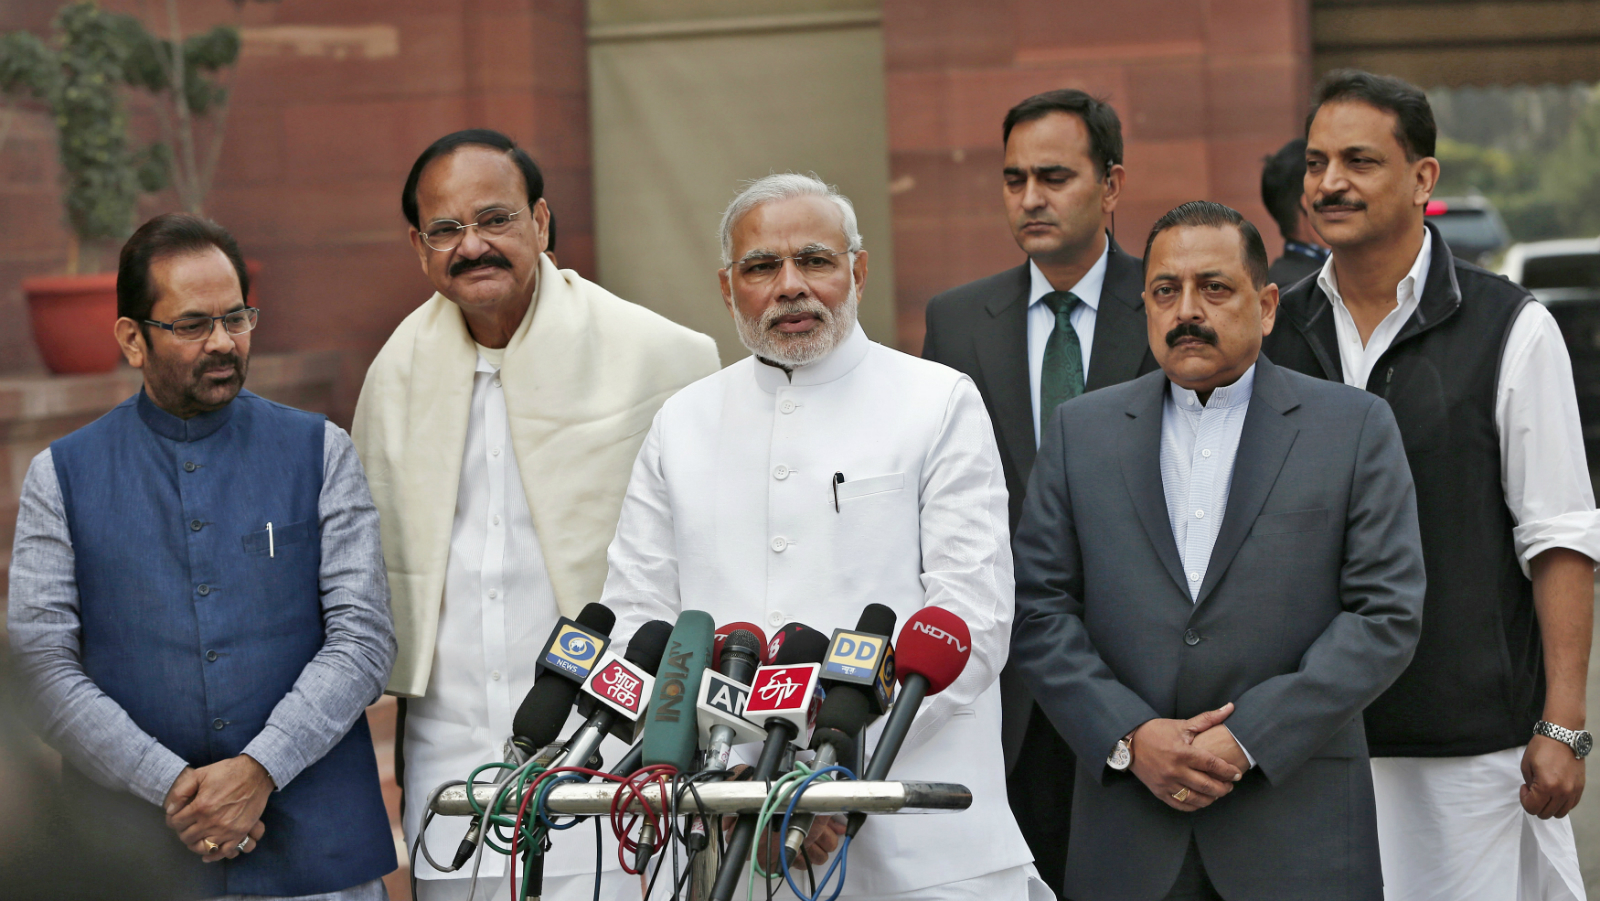 India's Prime Minister Narendra Modi (3rd L) speaks to the media as Minister of State for Parliamentary Affairs Mukhtar Abbas Naqvi (L), Venkaiah Naidu (2nd L), Minister of Urban Development, Jitendra Singh (2nd R), Minister of State for Prime Minister Office, and Rajiv Pratap Rudy (R), Minister of State for Skill Development and Entrepreneurship, look on upon arrival on the opening day of the winter session of the Indian Parliament in New Delhi November 24, 2014.